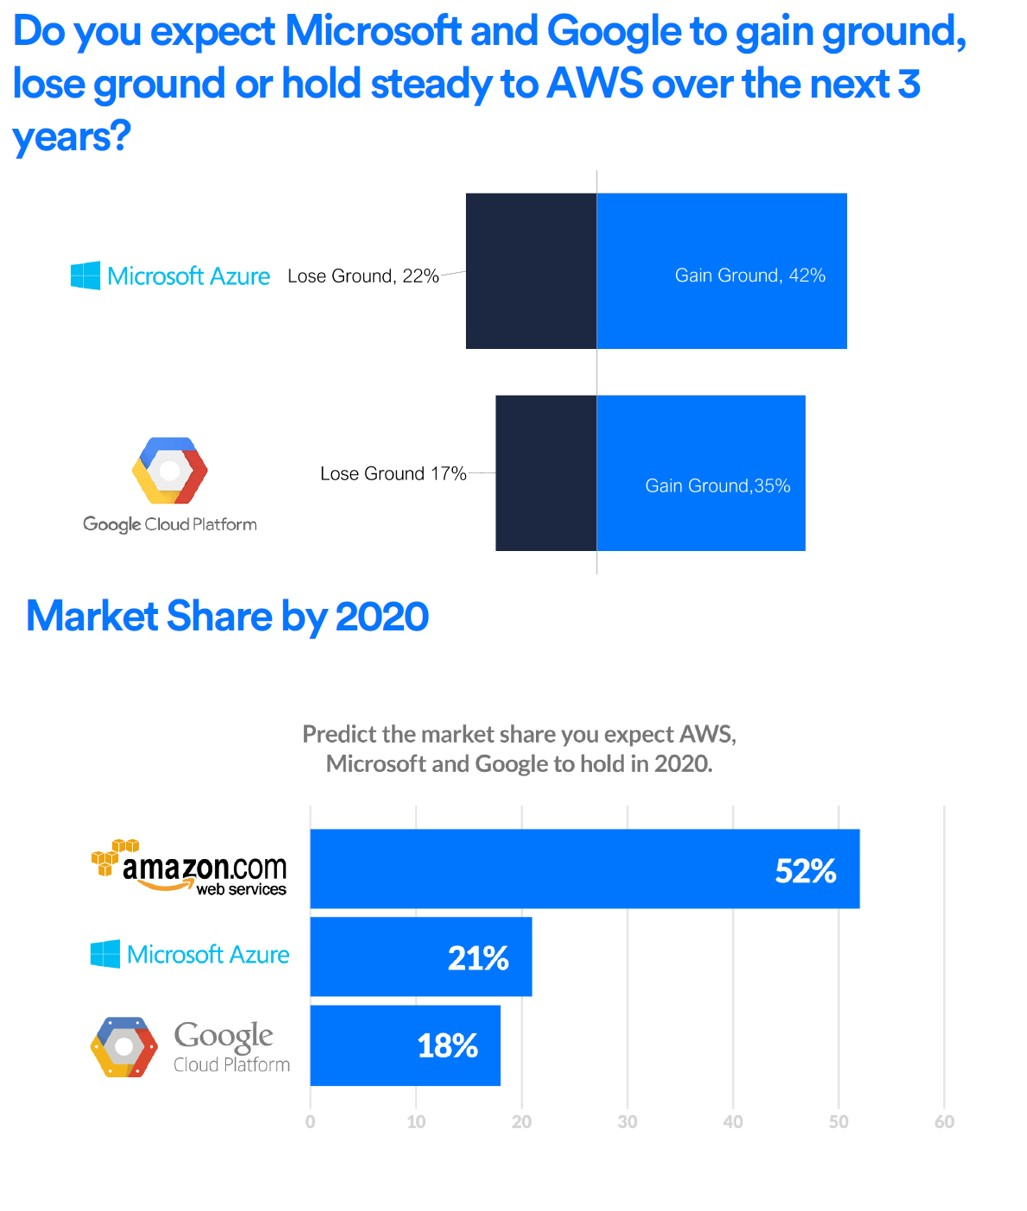 Amazon-AWS-Google-Cloud-Microsoft-Azure-Market-Share-estimates.jpg